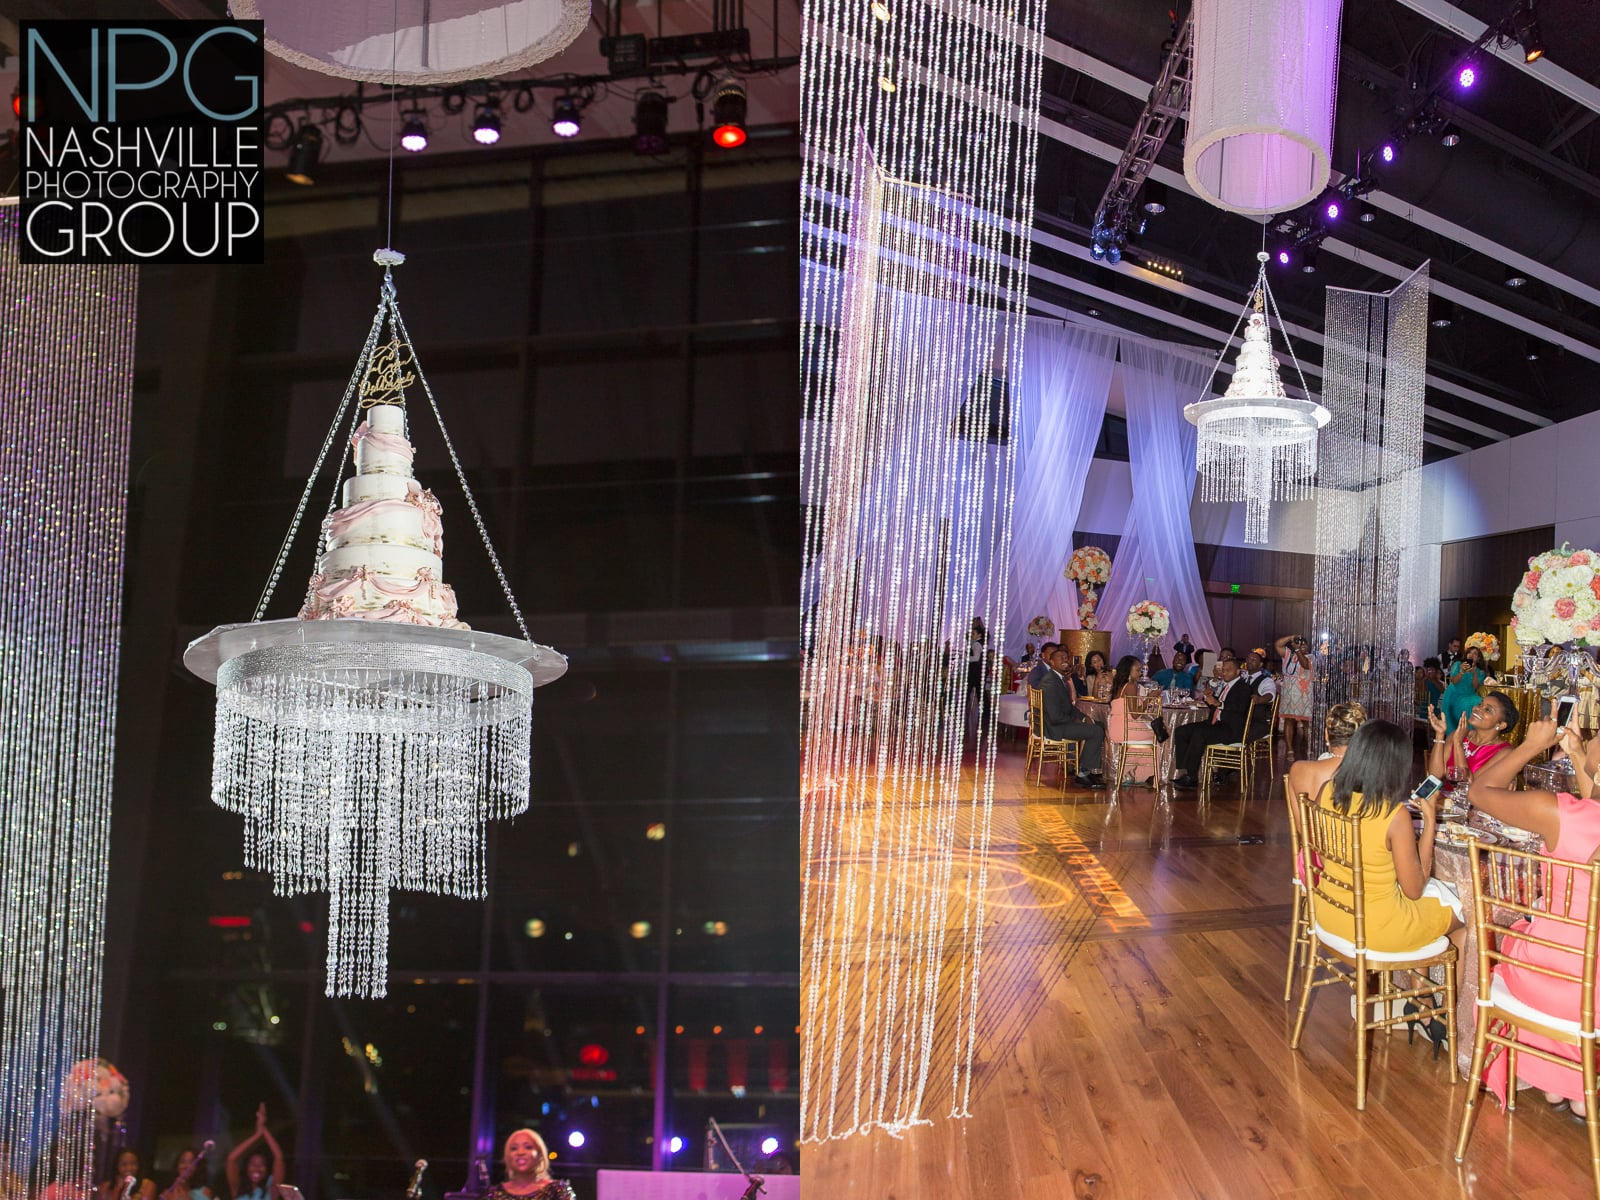 Jay Qualls  of the  Frosted Affair  bakery created this one of a kind wedding cake that was in the chandelier then lowered via motor to the dance floor.